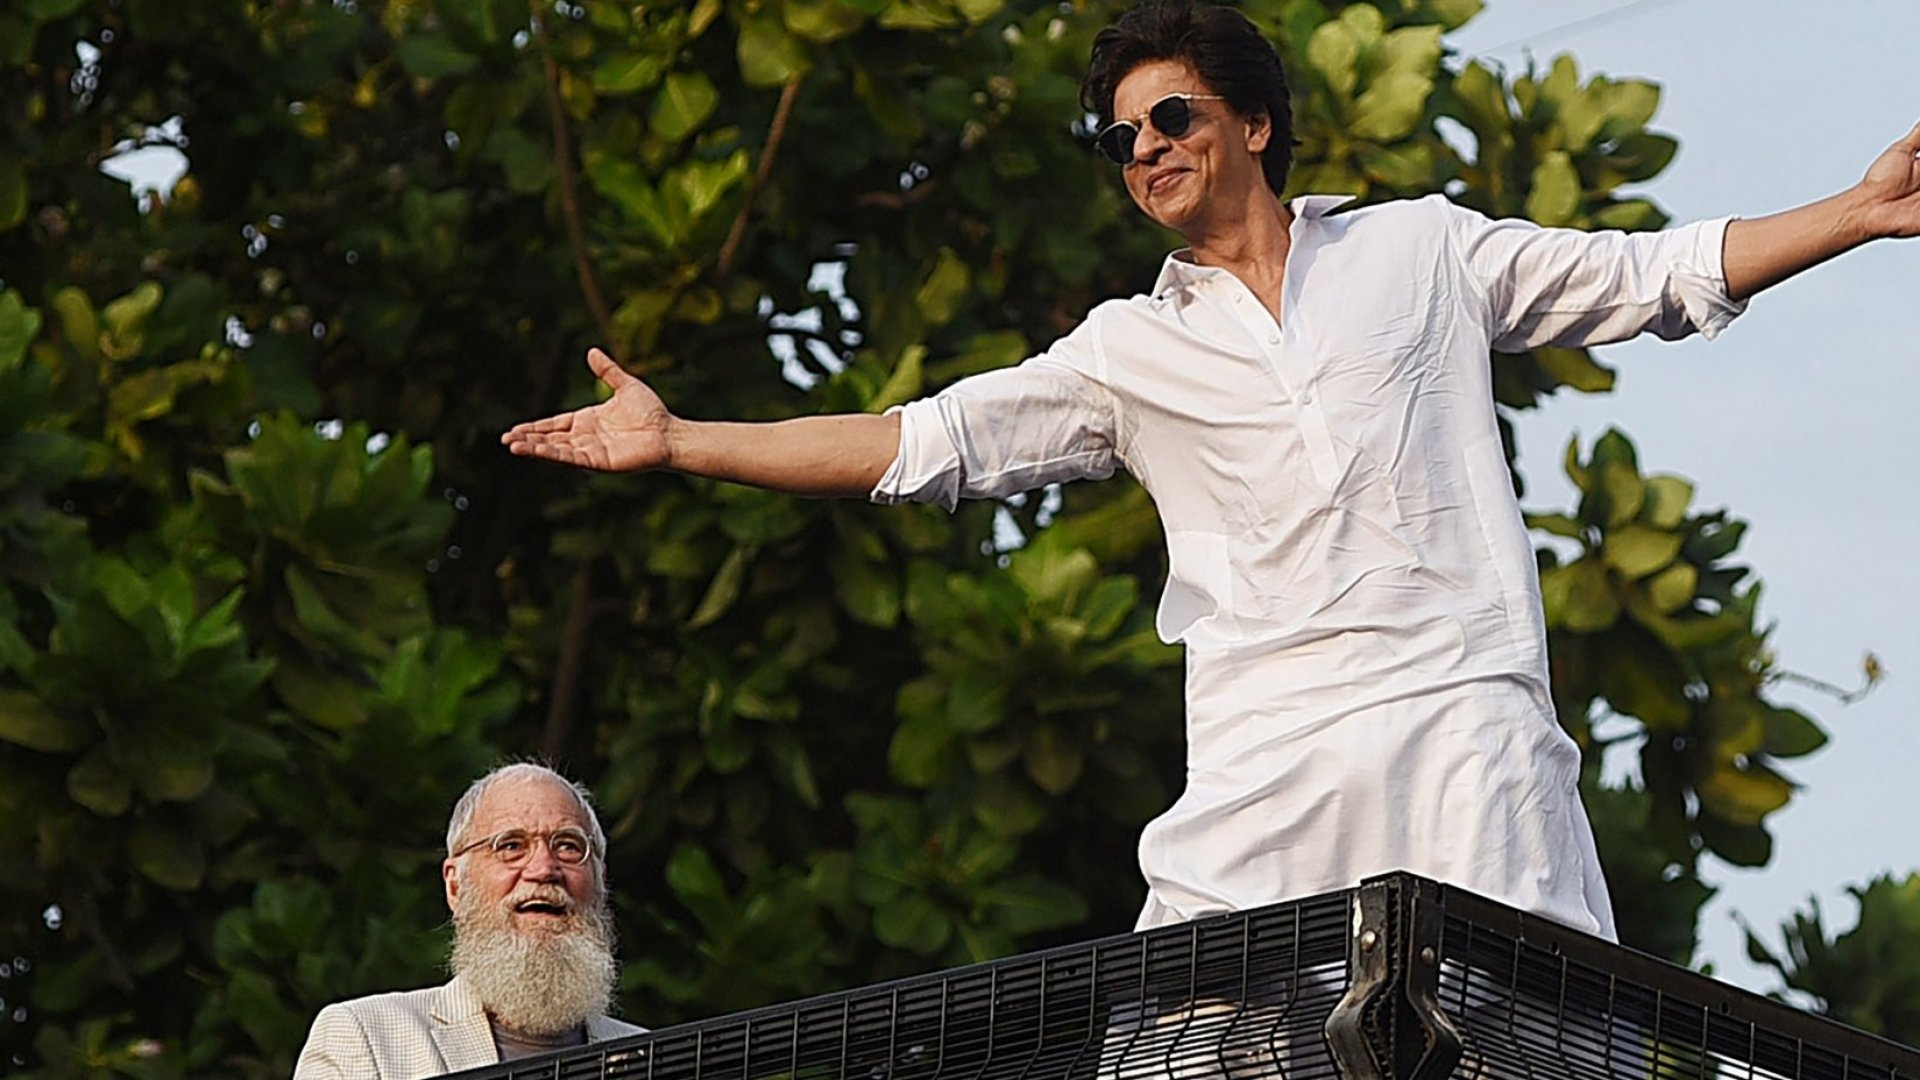 In 7 Words, Bollywood Icon Shah Rukh Khan Gives a Master Class in Creative Service